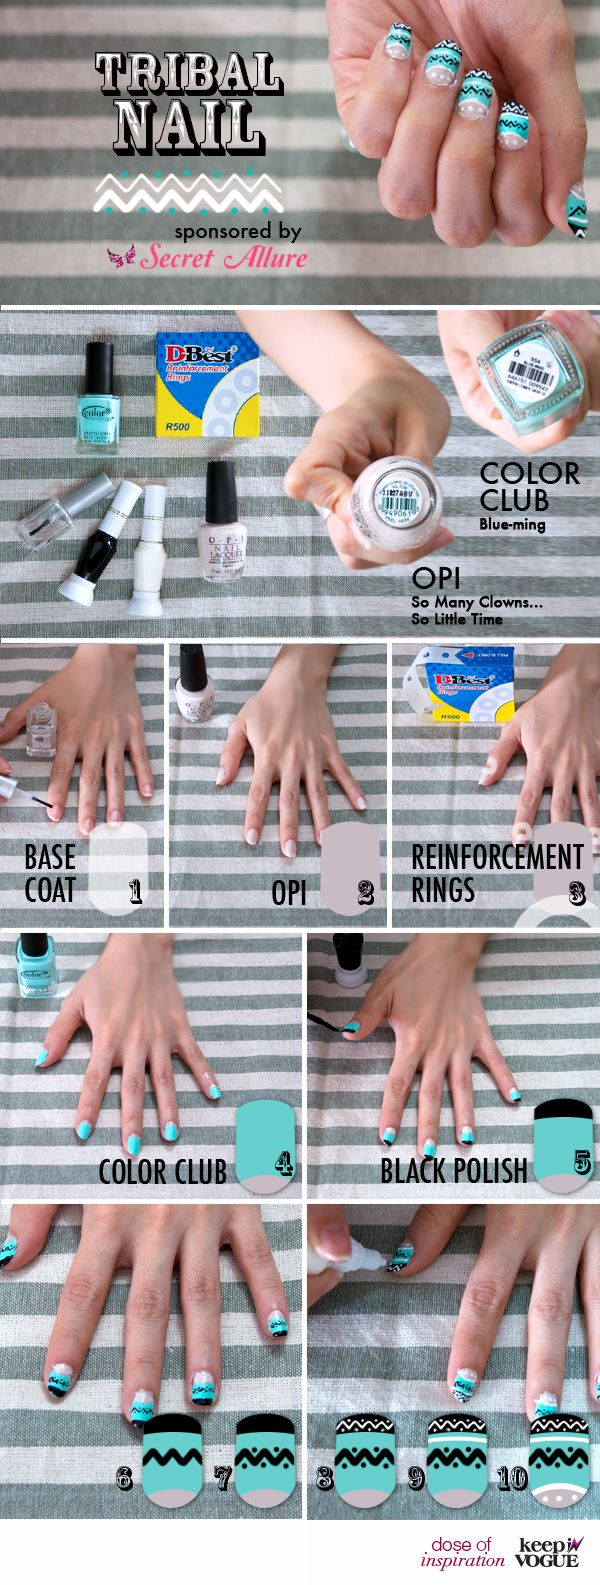 Keep In Vogue - Conceptual Review: Dose of Inspiration - DIY Tribal Nail Sponsor by Secret Alluree